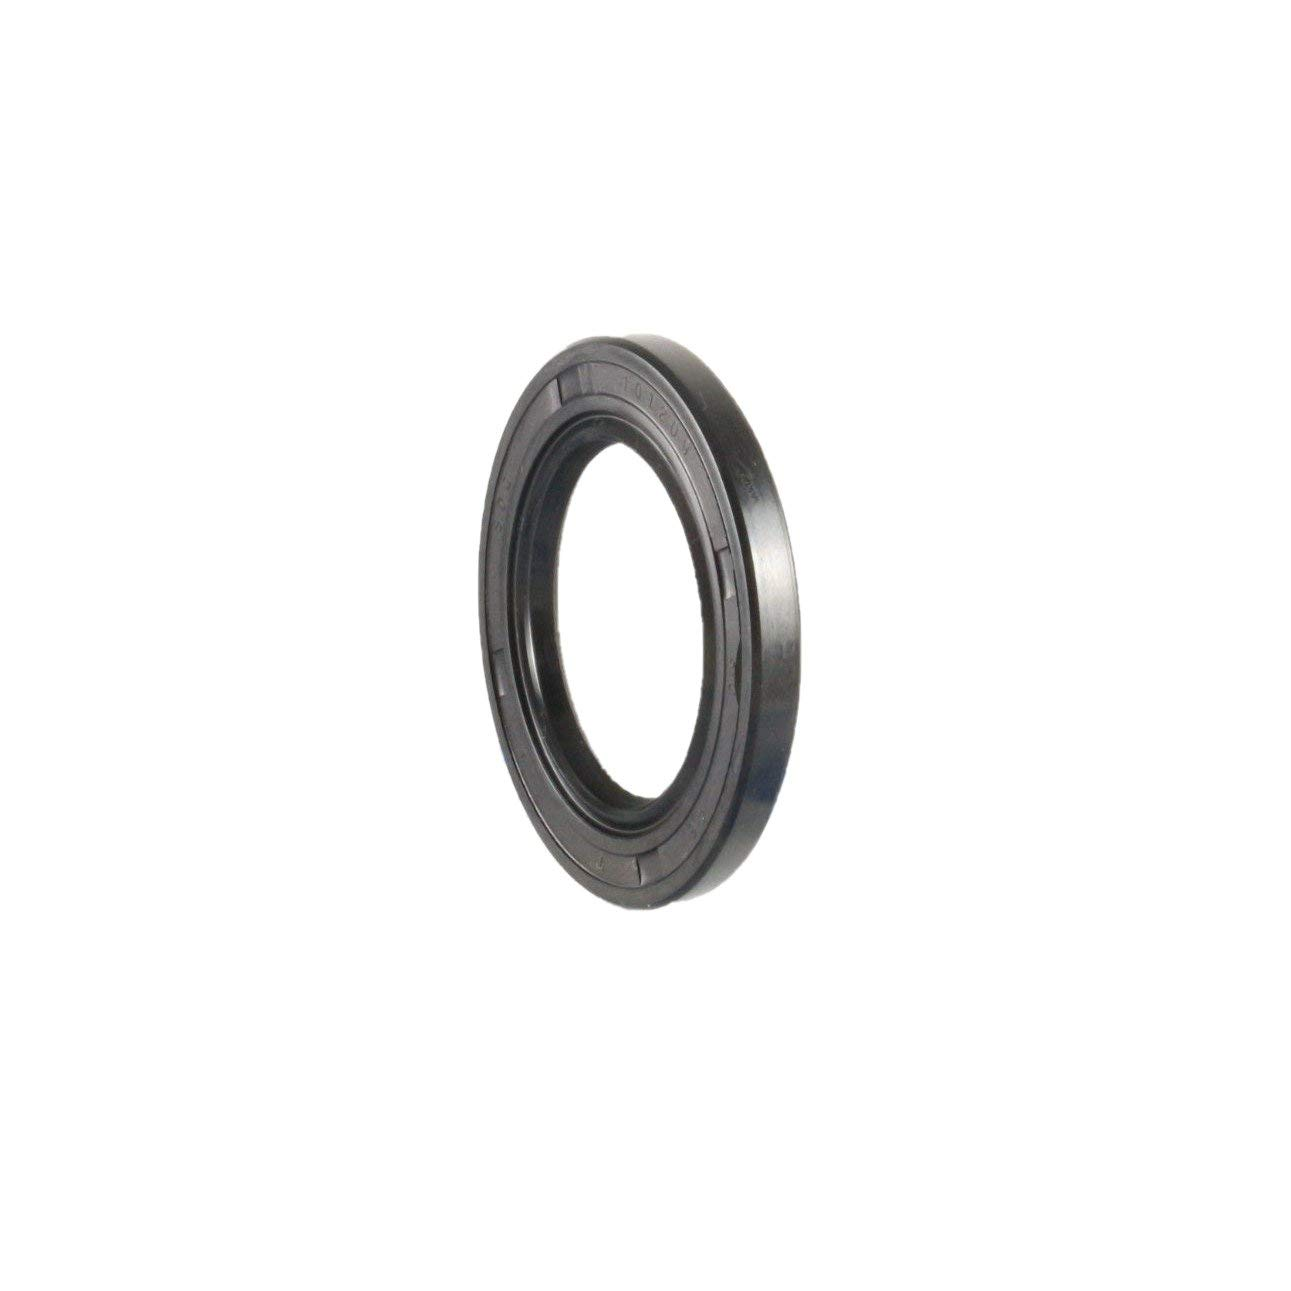 EAI Oil Seal 27mm X 41mm X 7mm TC Double Lip w/Spring. Metal Case w/Nitrile Rubber Coating